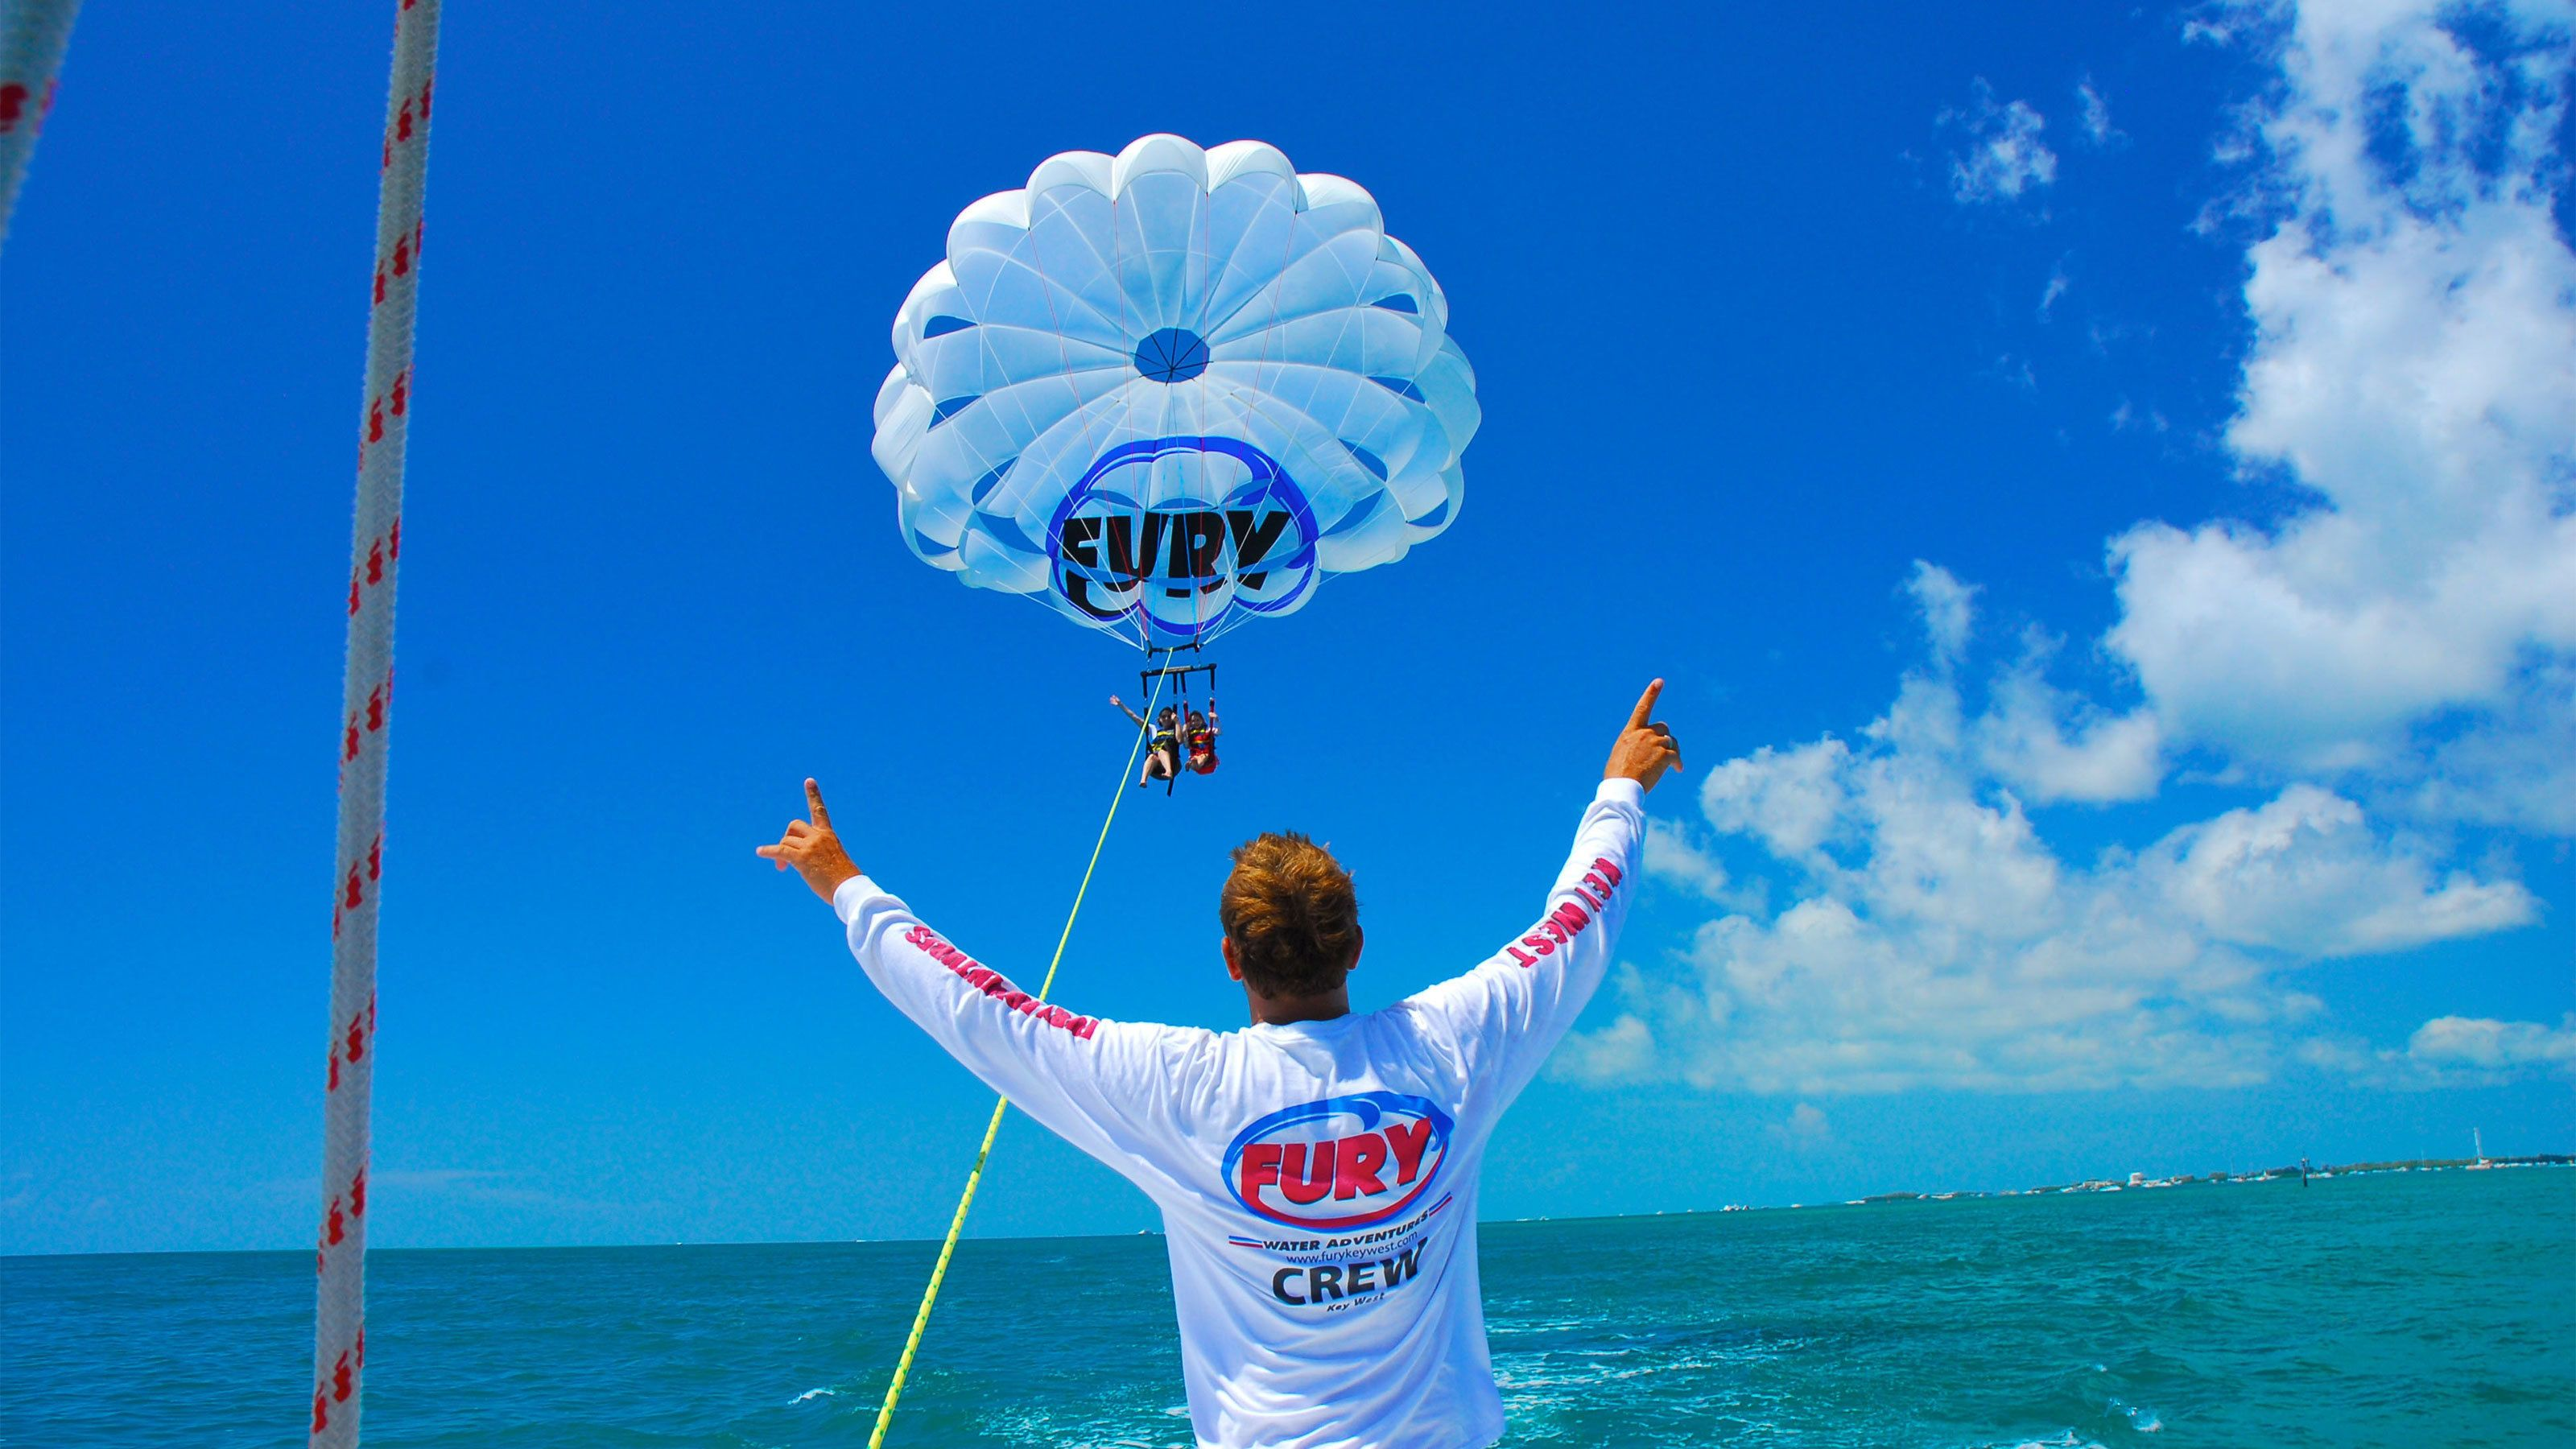 Sunny day for parasailing in Key West